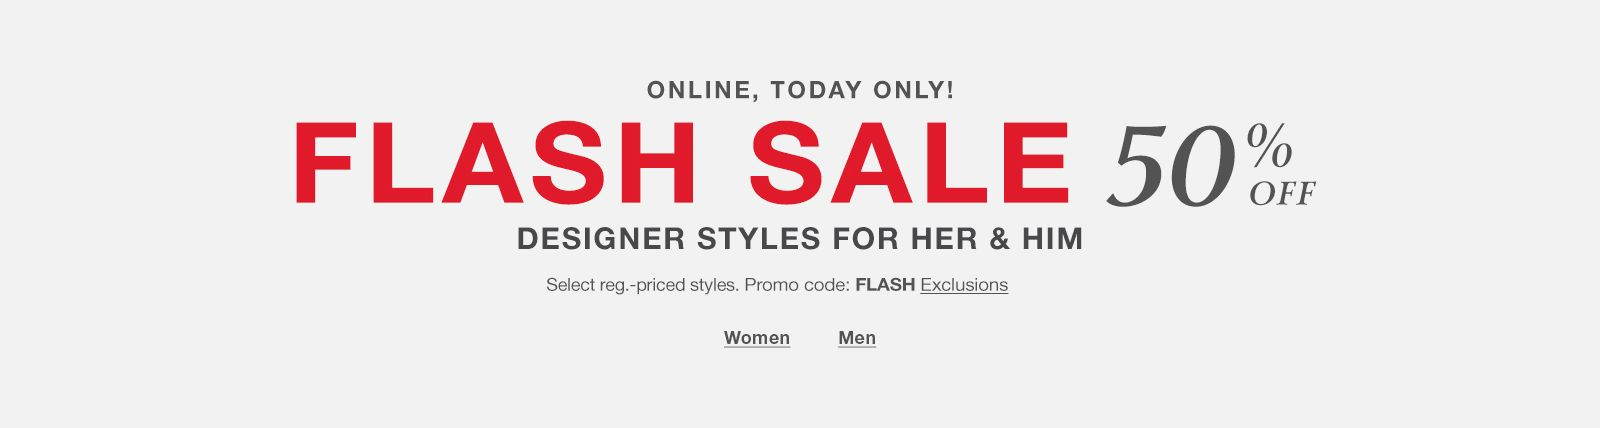 Online, Today Only! Flash Sale 50 percent off, Designer Styles for Her and Him, Select reg.-priced styles, Promo code: FLASH Exclusions, Women, Men